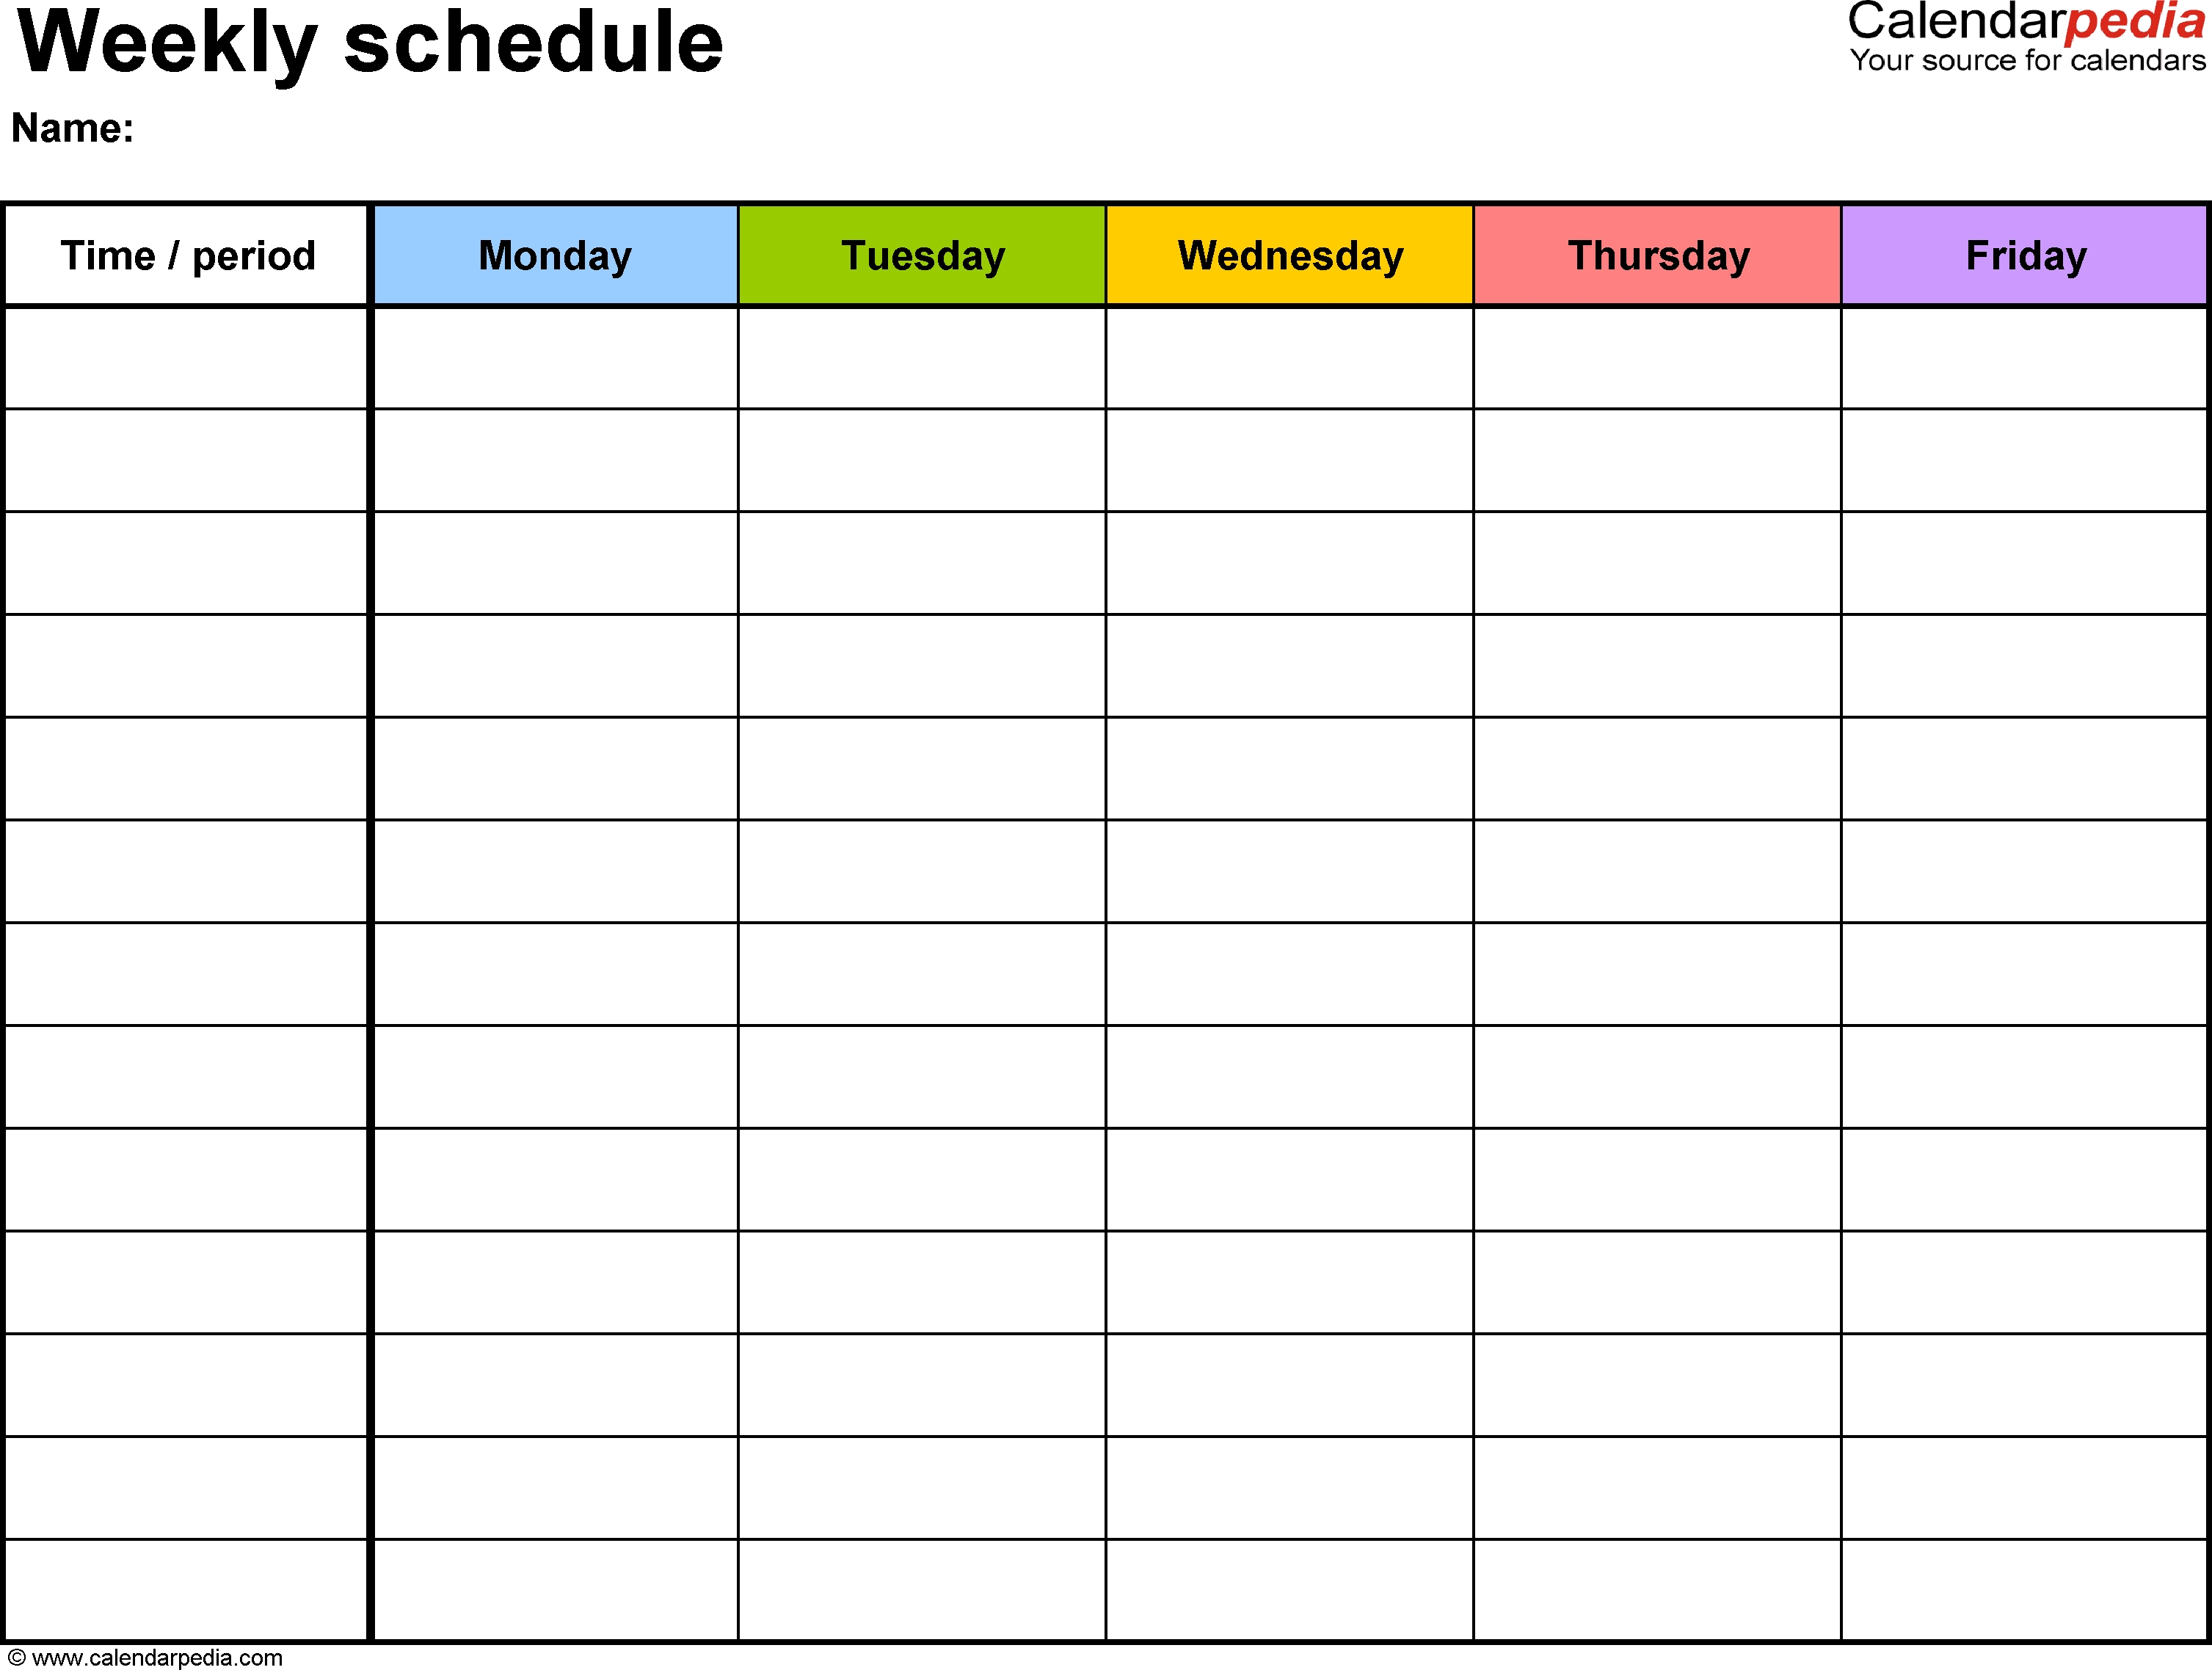 Free Weekly Schedule Templates For Word - 18 Templates pertaining to October Blank Calendar Monday To Friday Only